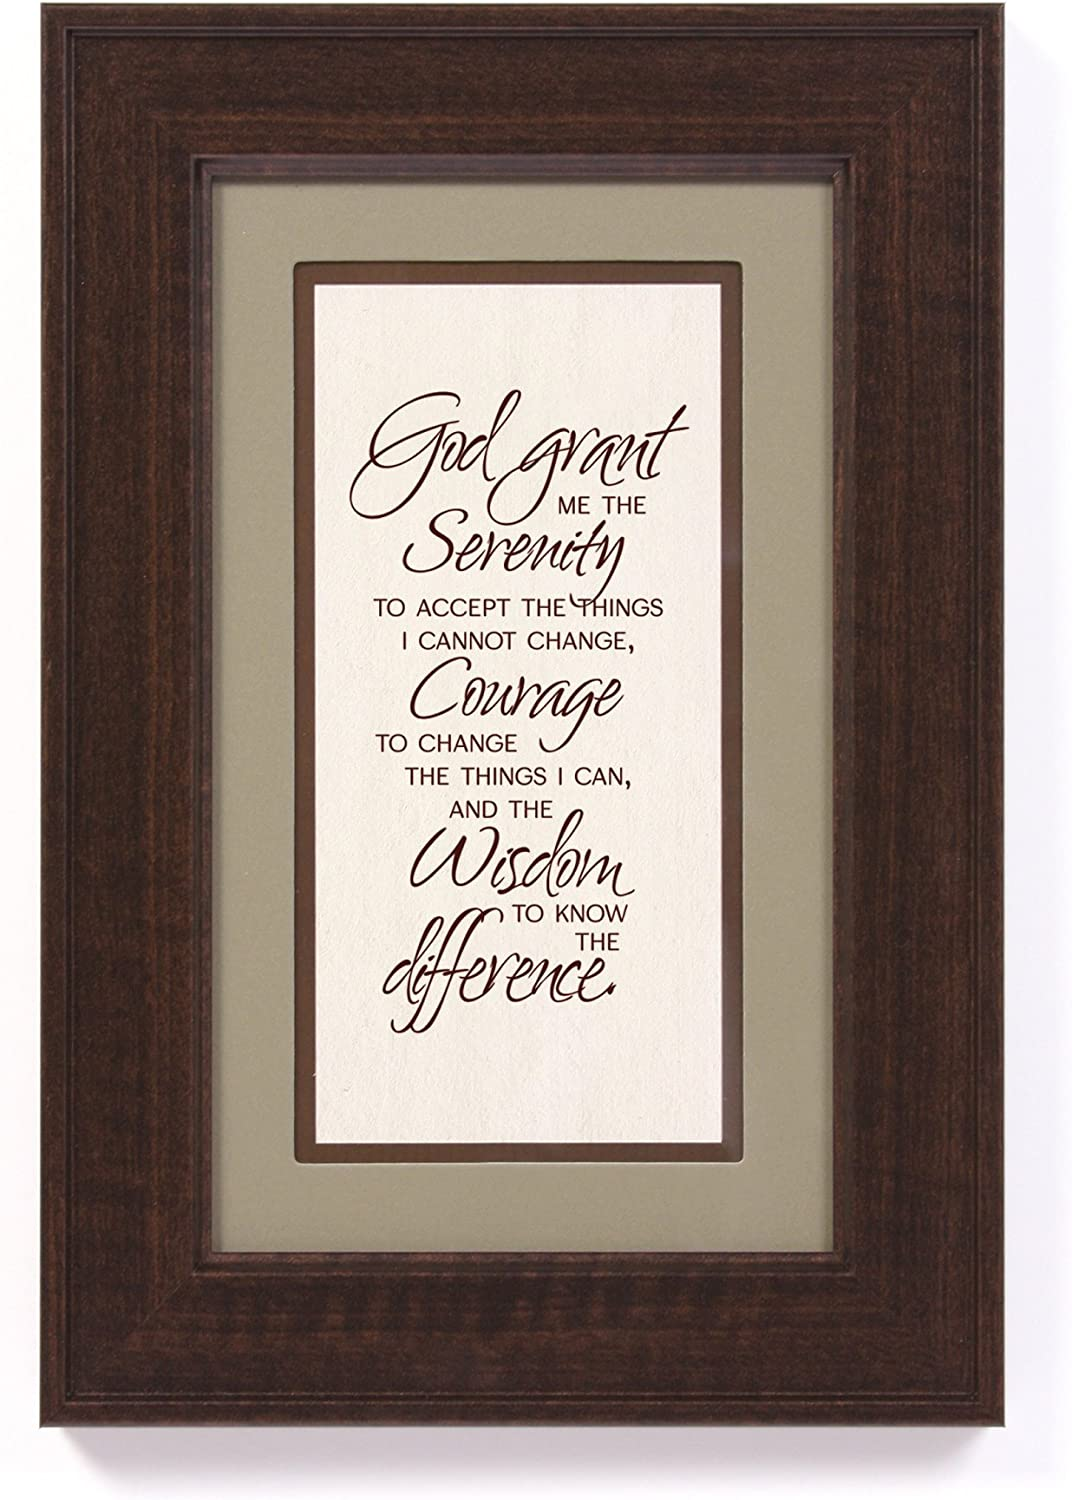 James Lawrence Serenity Prayer Framed Wall Art Plaque